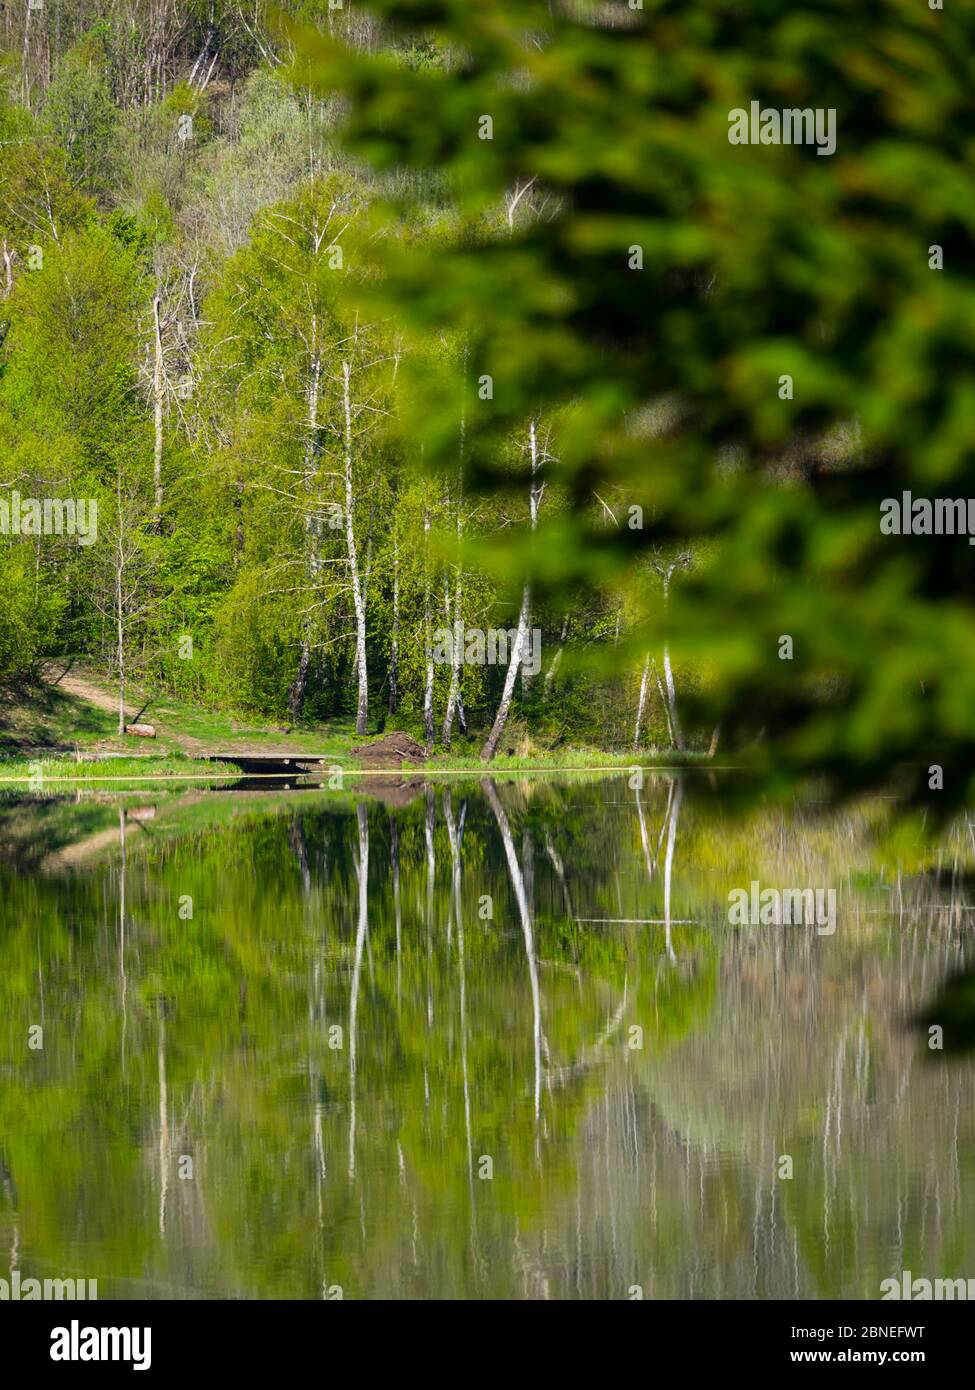 Green forest nature natural beauty focused on background trees coastline Stock Photo